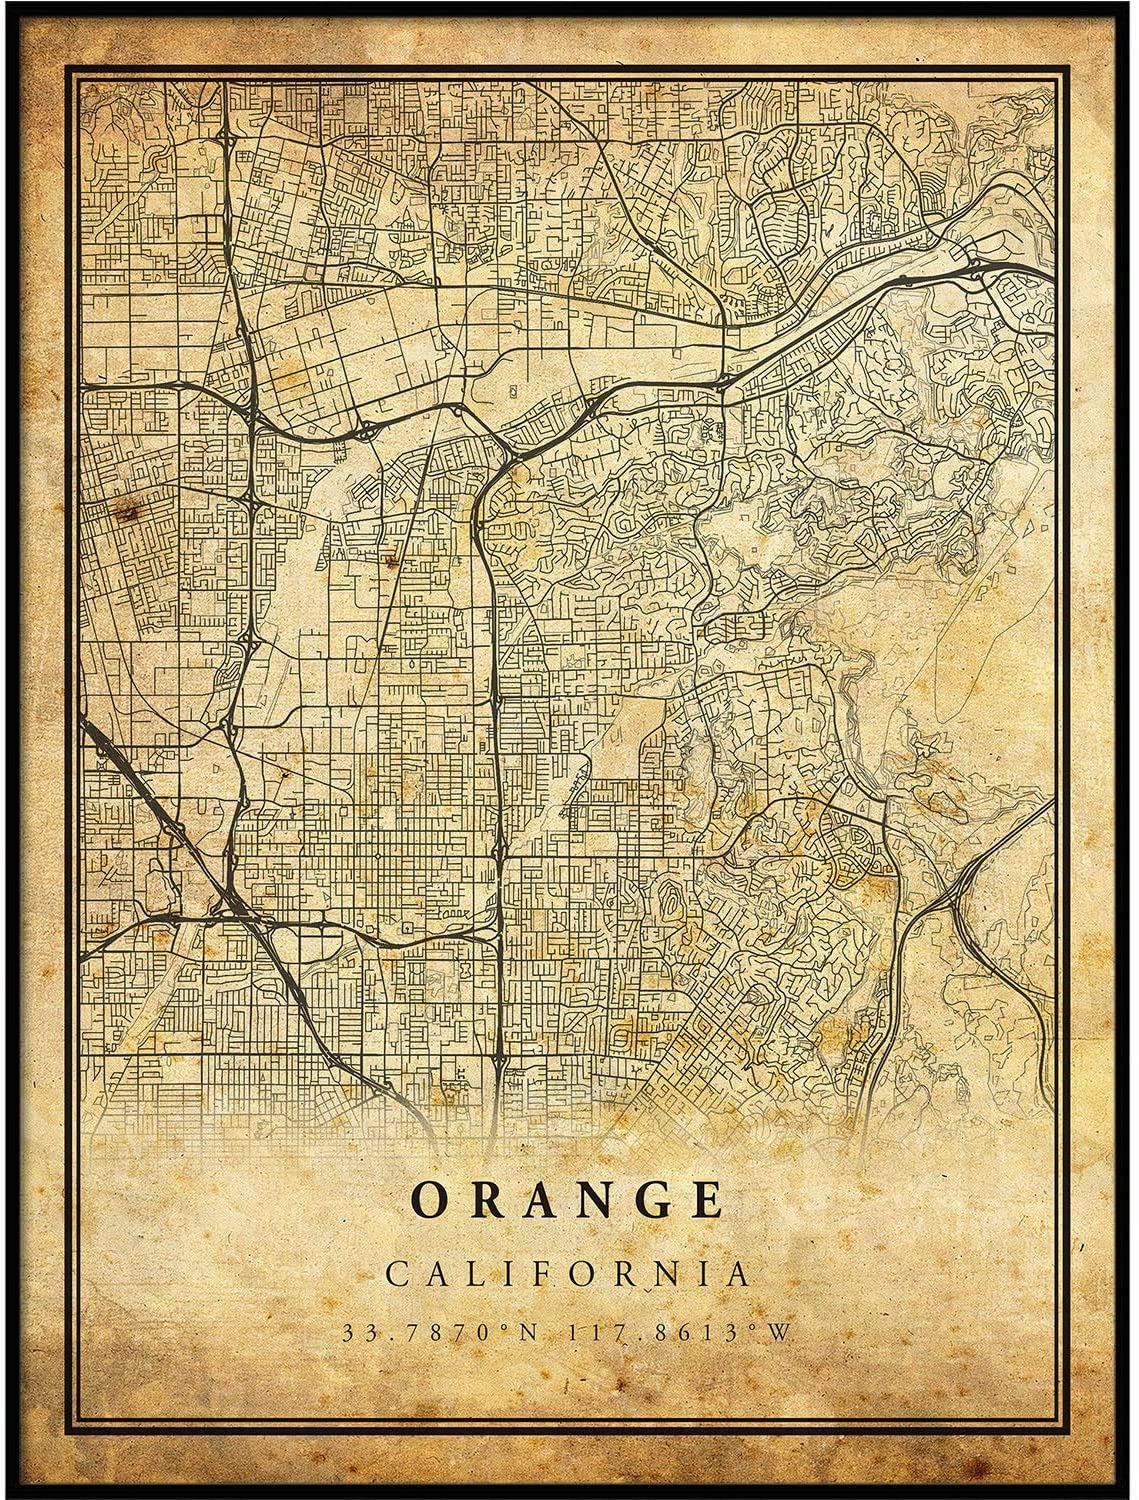 Orange map Vintage Style Poster Print | Old City Artwork Prints | Antique Style Home Decor | California Wall Art Gift | Old map Poster 18x24